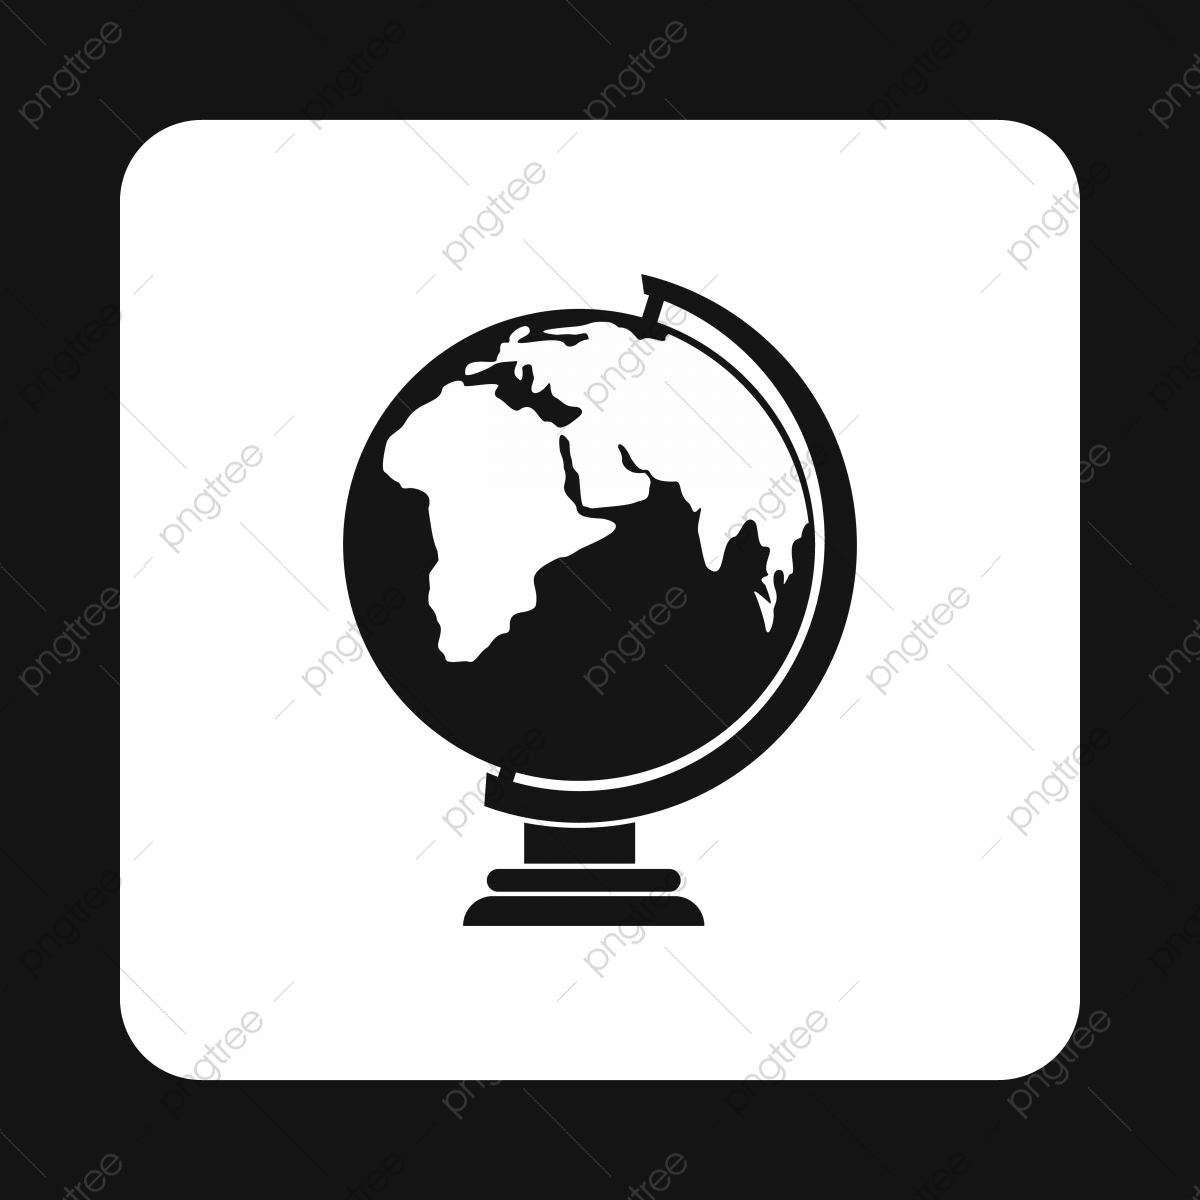 Black And White Globe Png Vector Psd And Clipart With Transparent Background For Free Download Pngtree